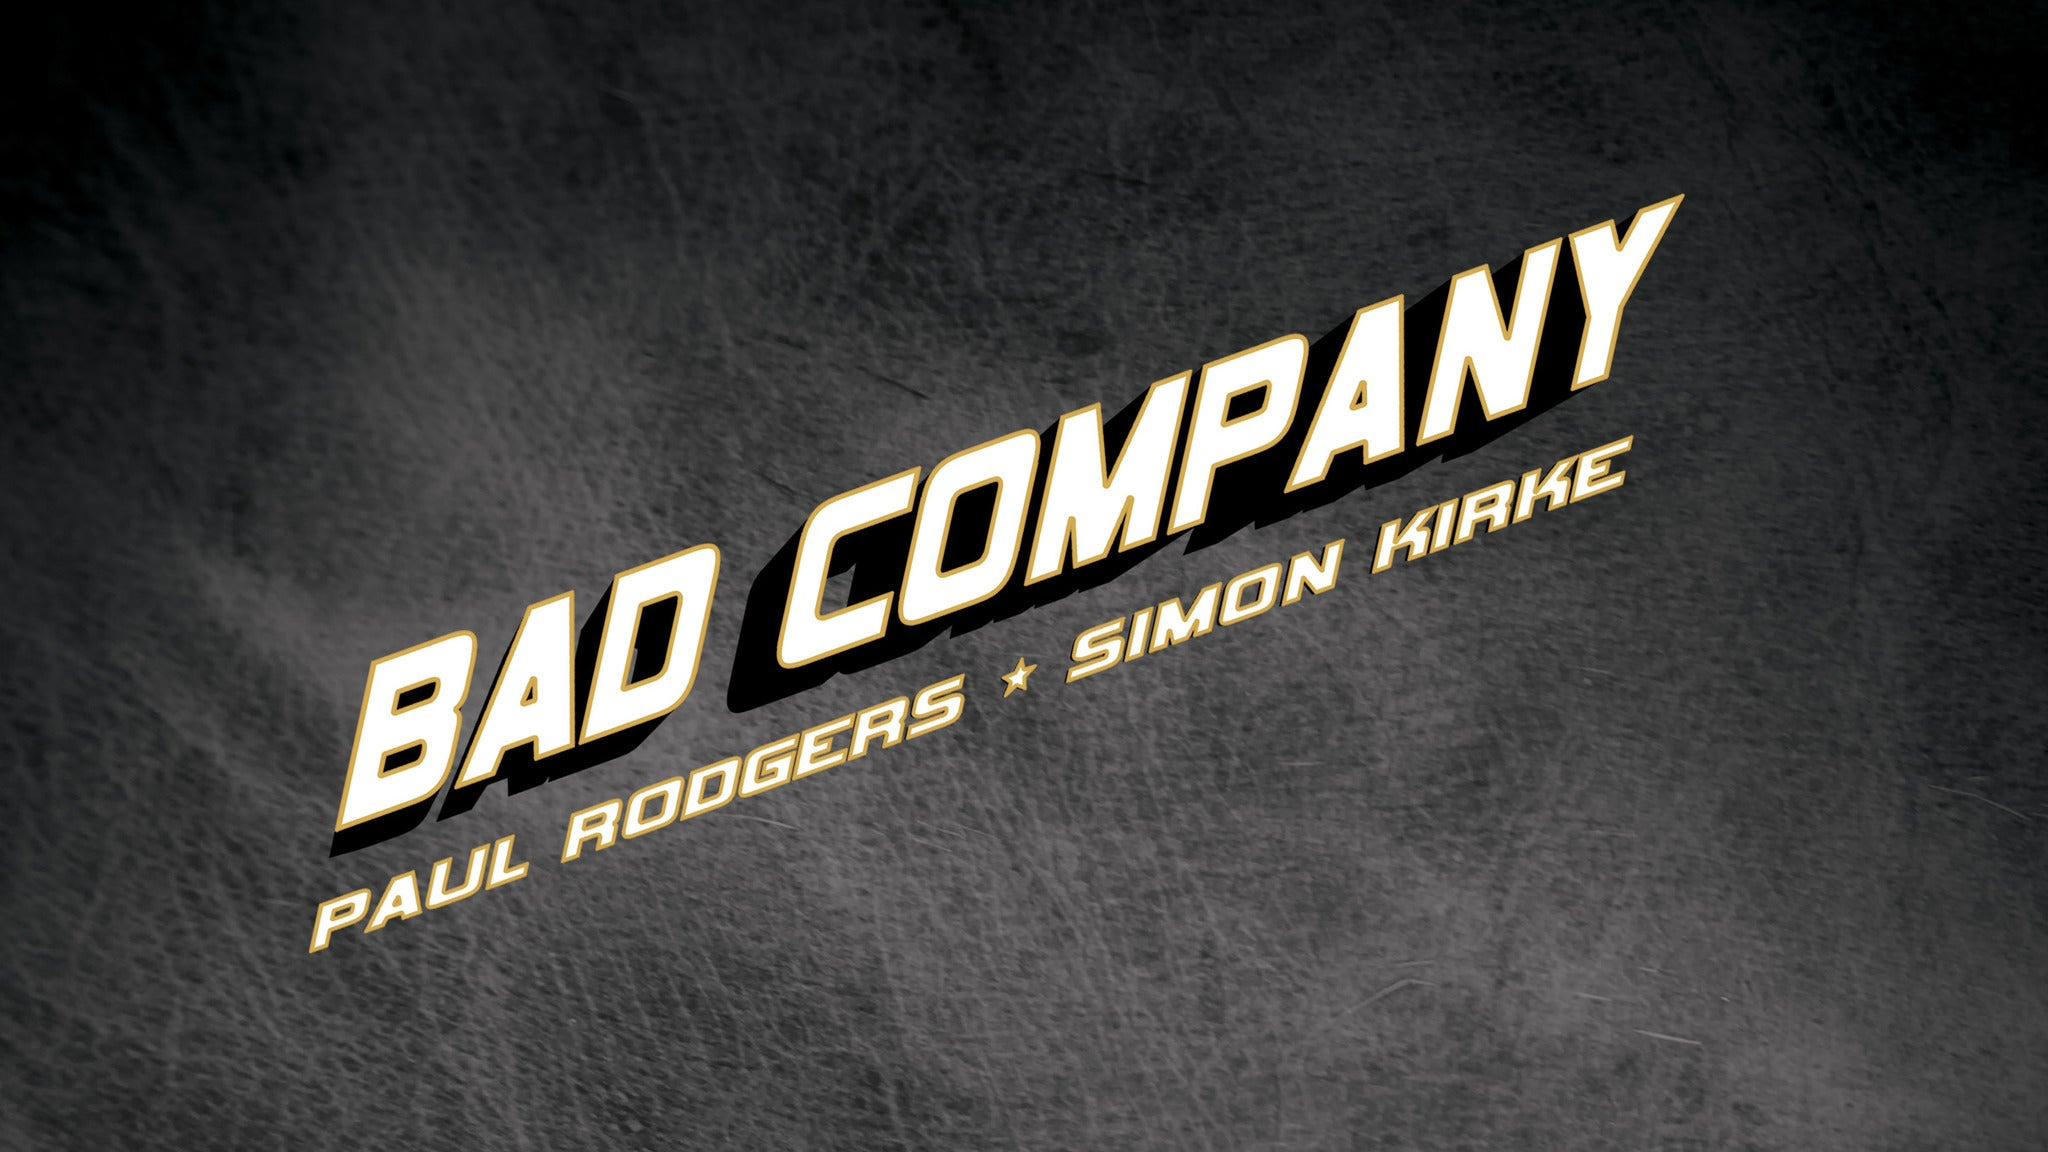 Bad Company w/ Foghat at Fraze Pavilion